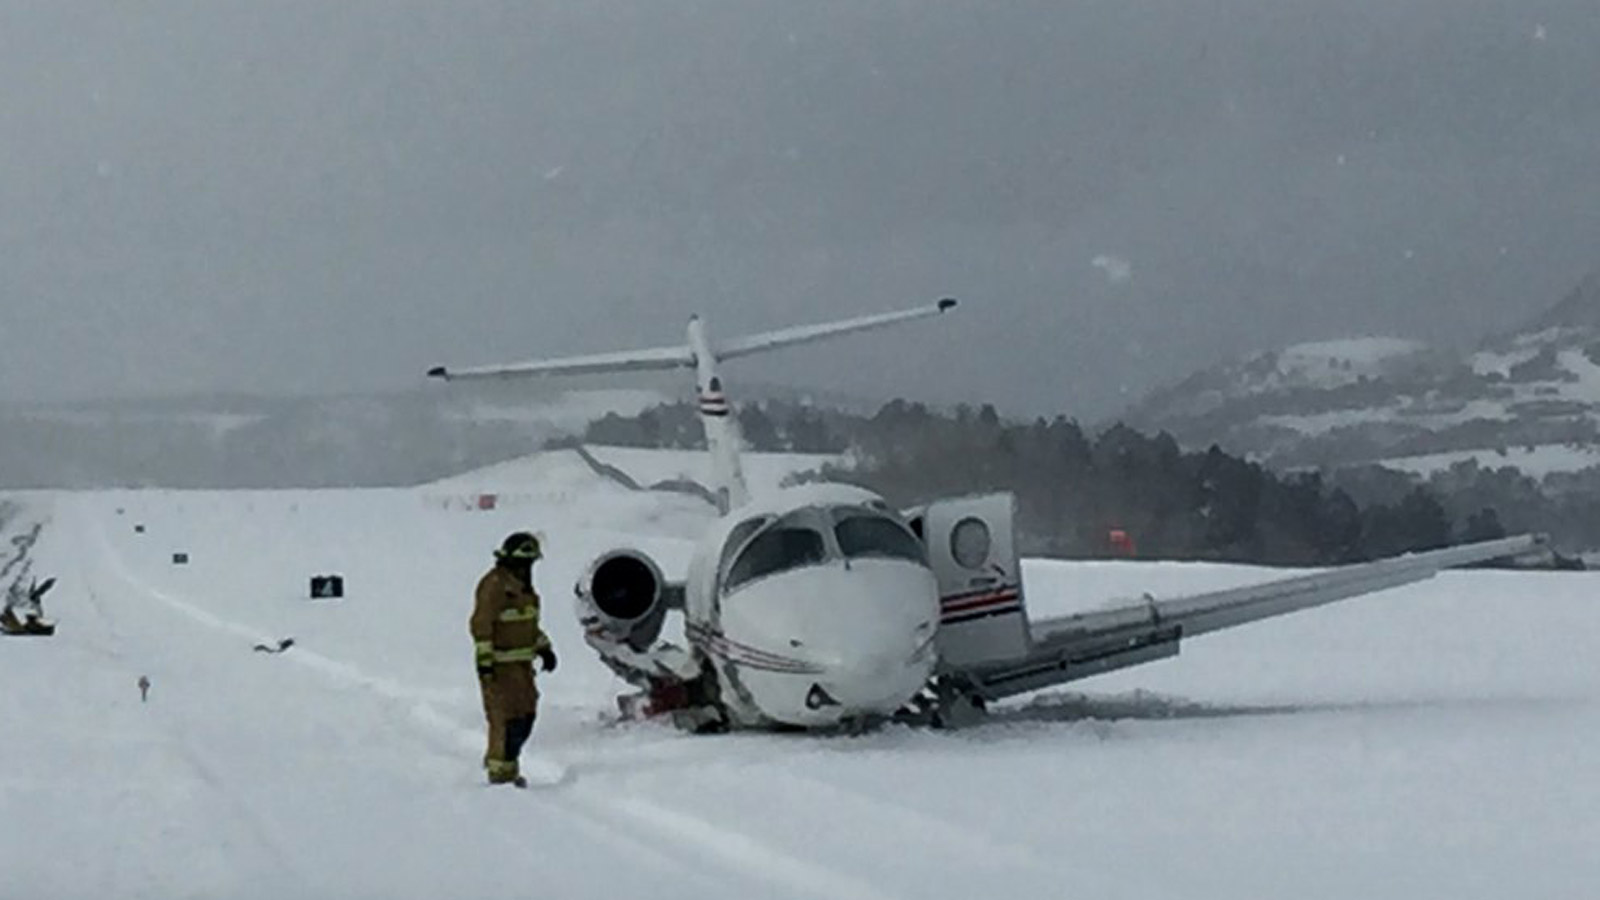 A small plane crashed at the Telluride Airport on Wednesday (credit: San Miguel Sheriff)